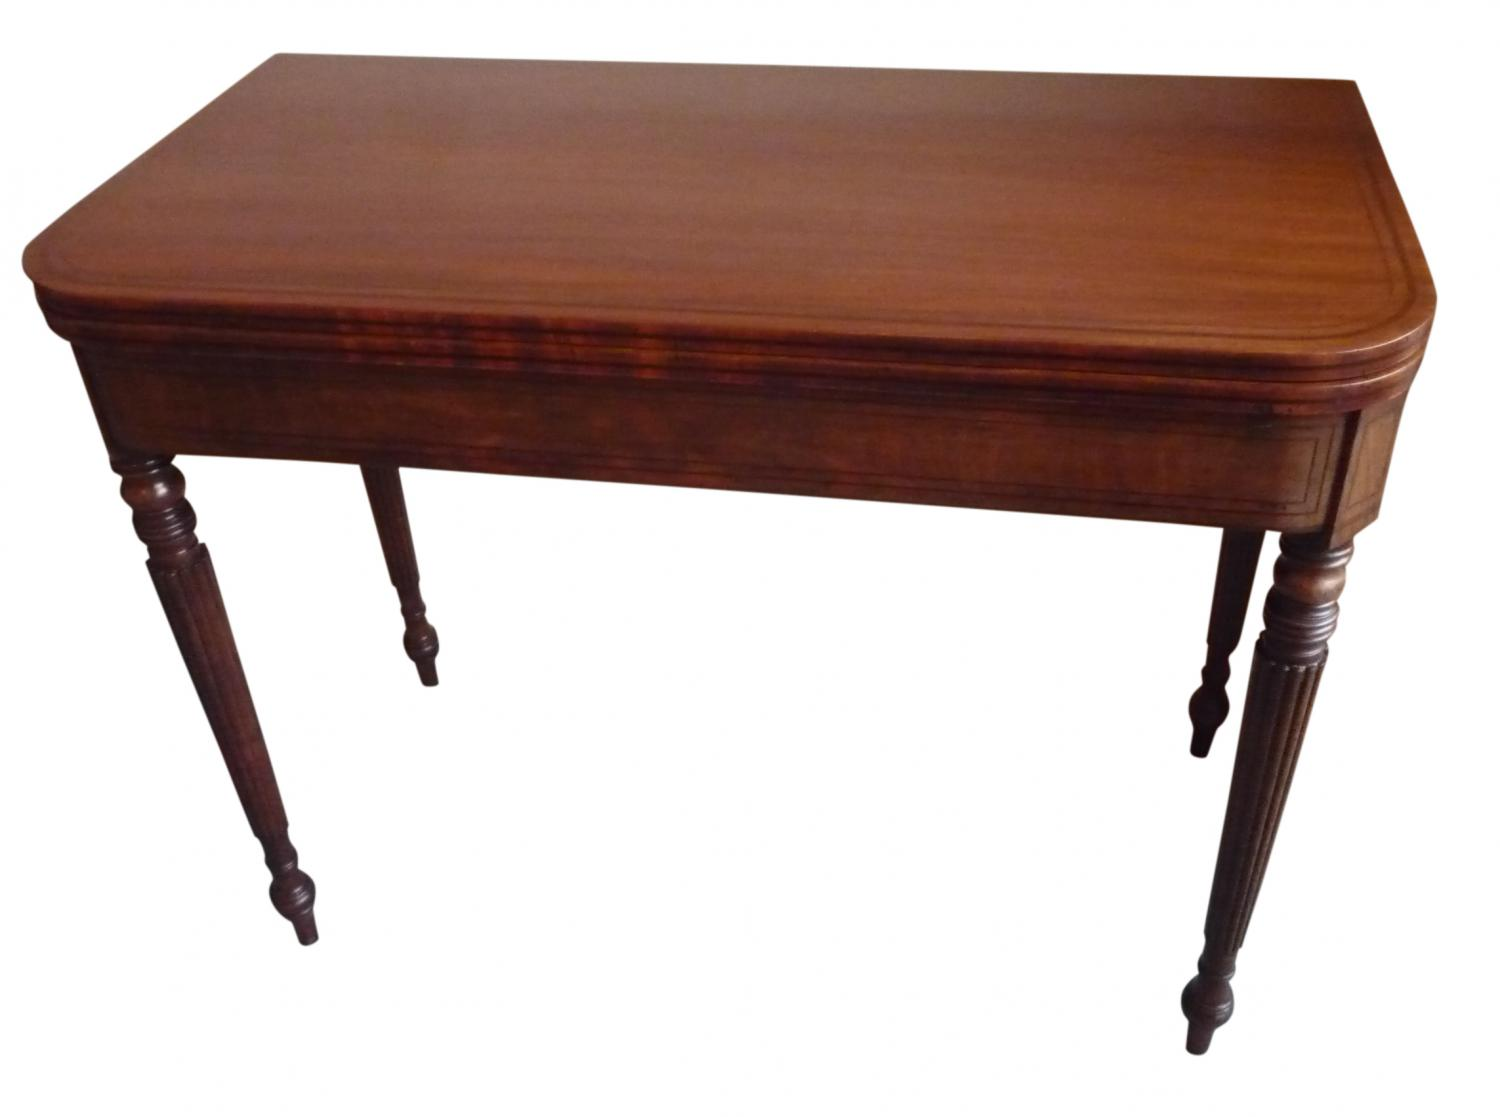 Georgian mahogany card table circa 1825